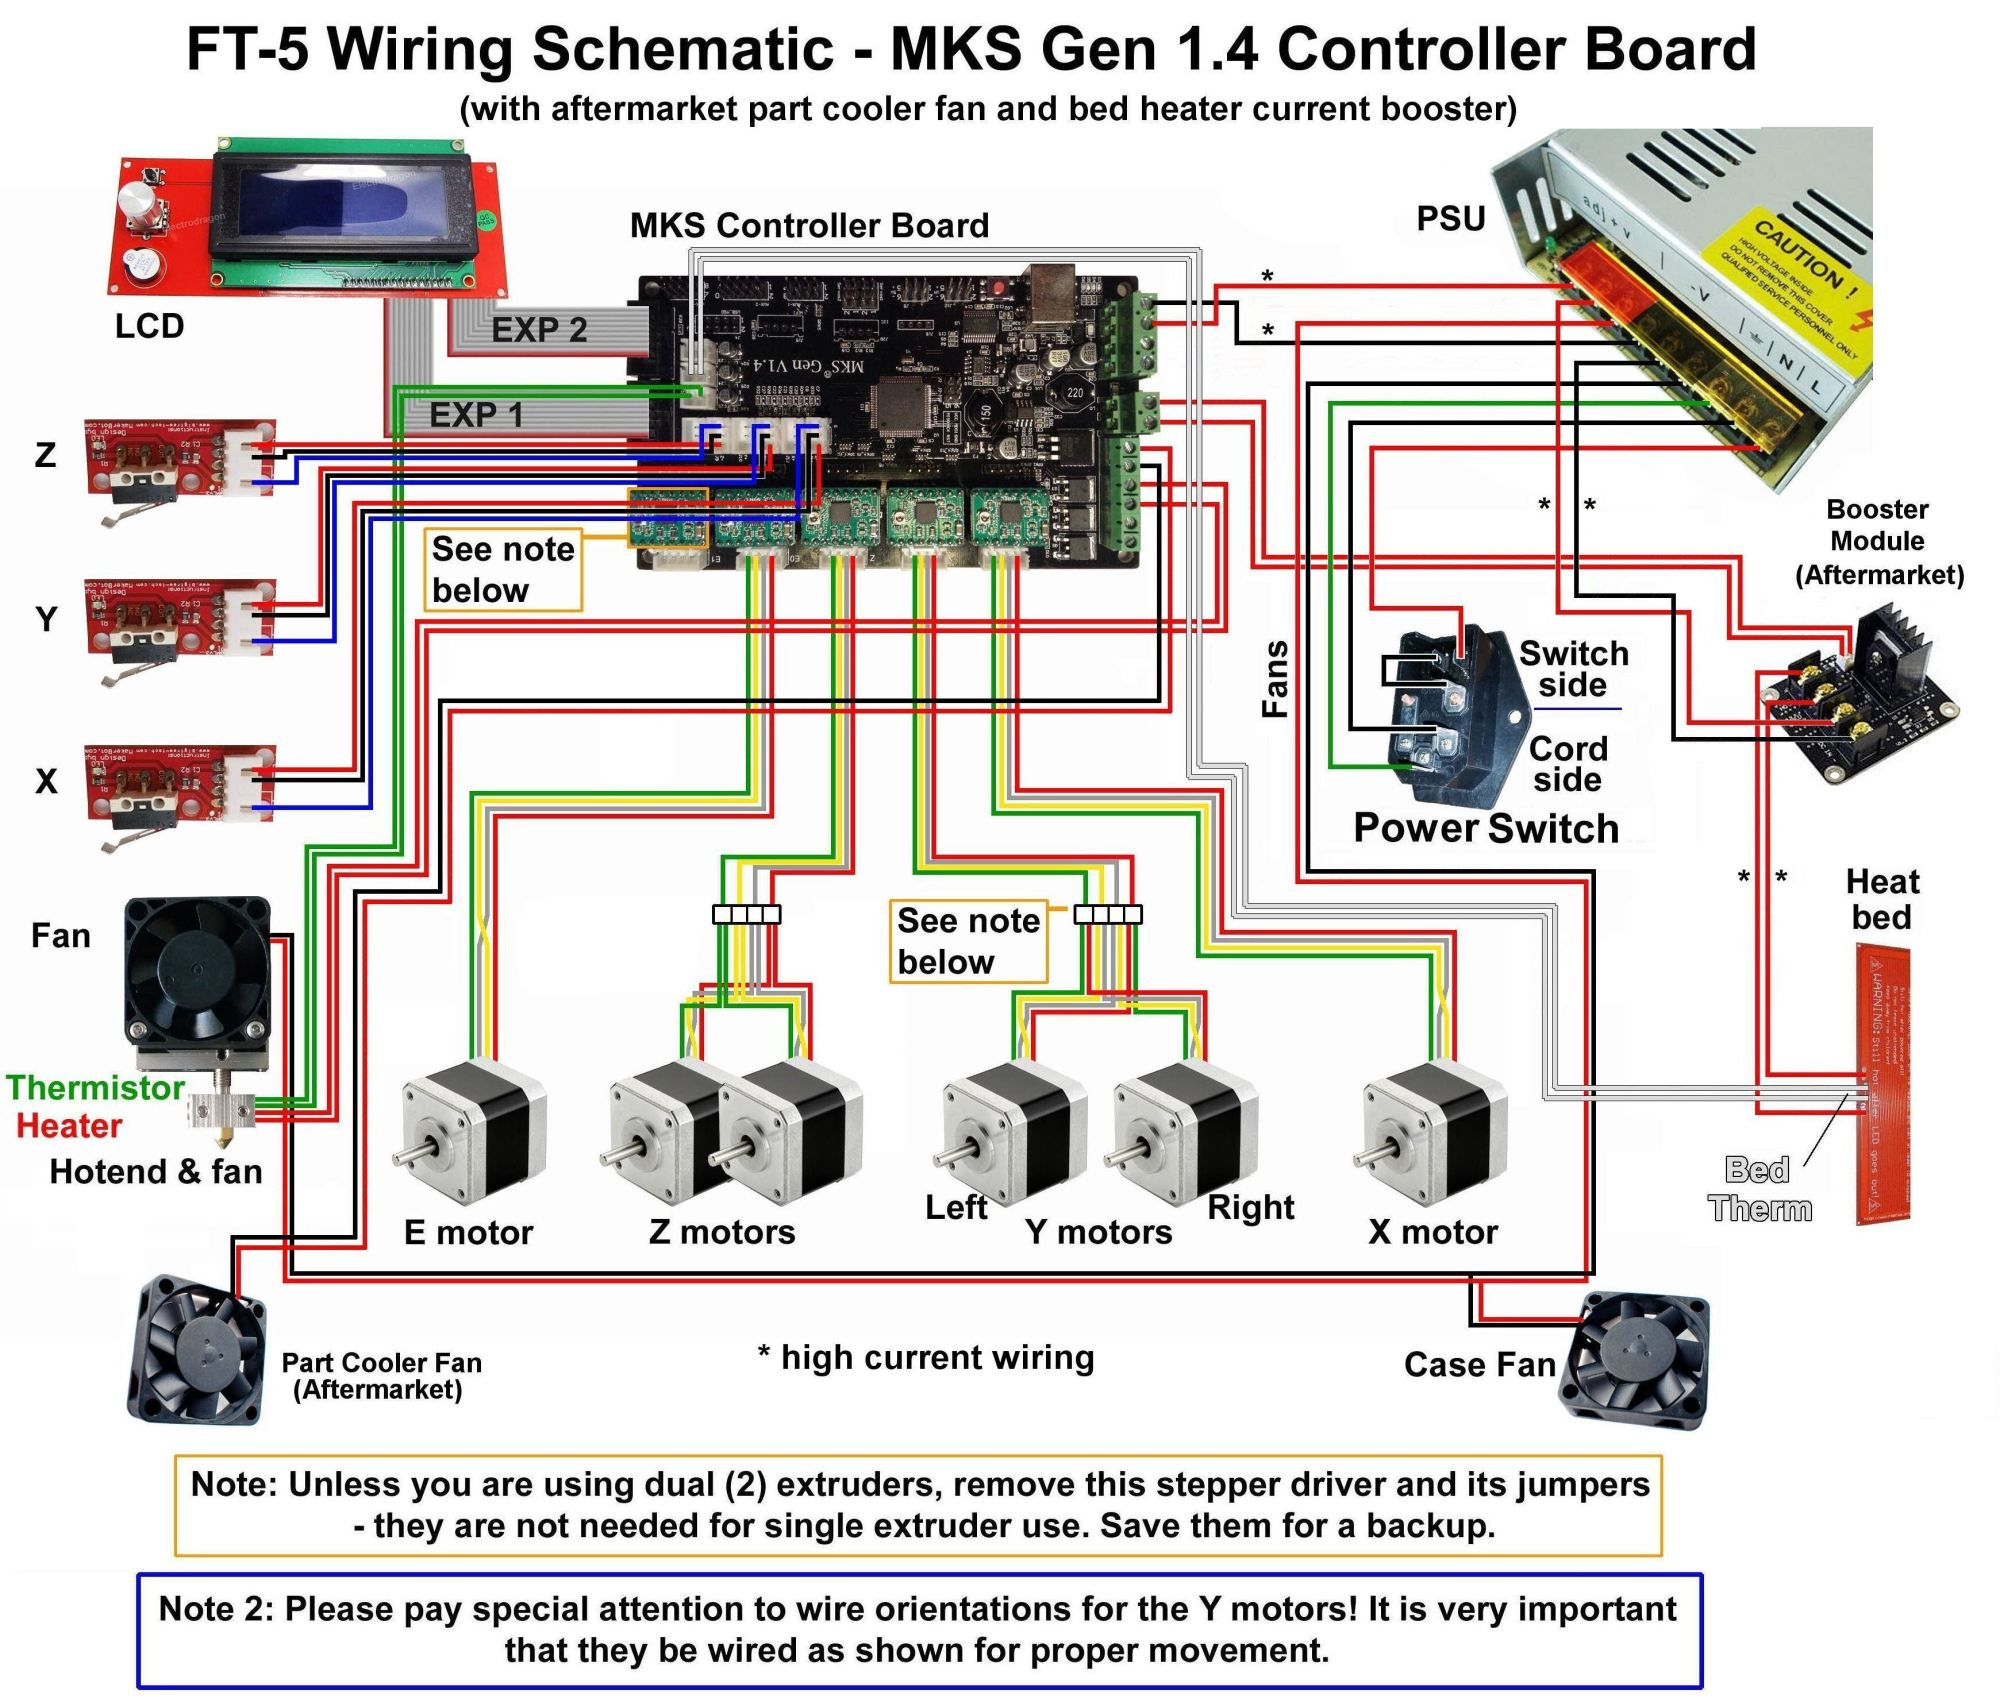 hight resolution of ft5wiring with extras jpg3480x2956 1 29 mb